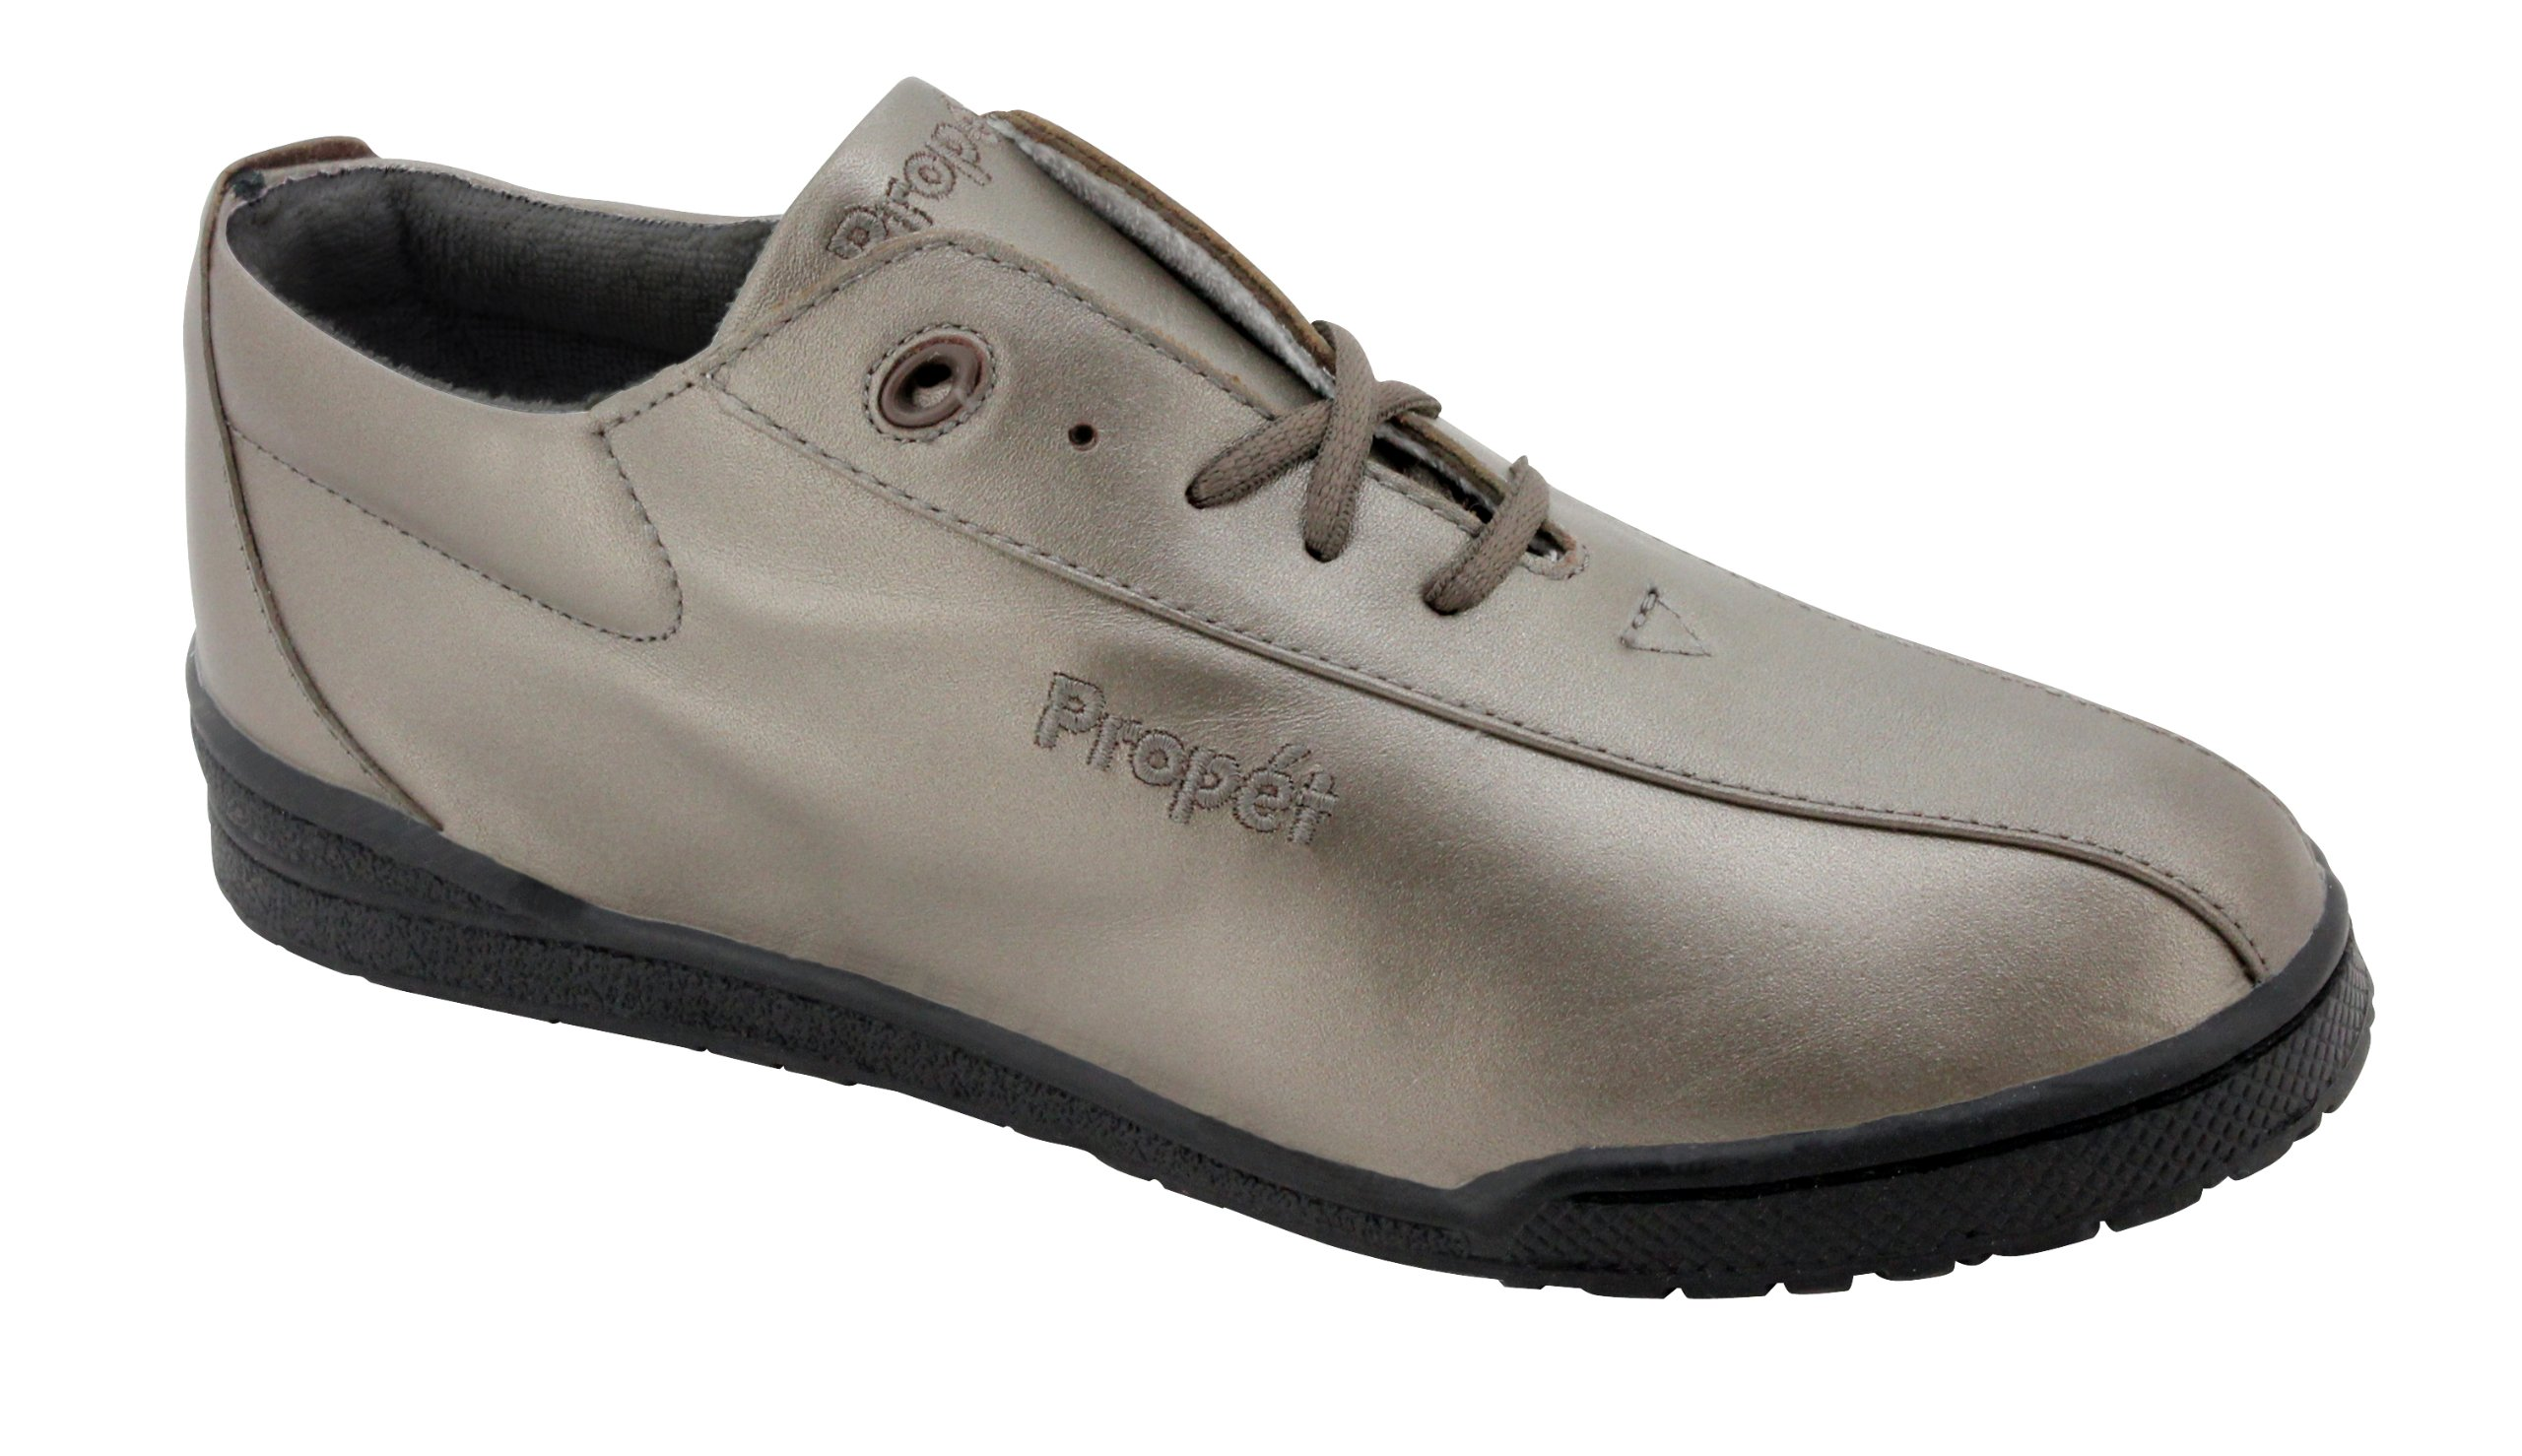 Propet Women's Firefly,Pewter,9.5 M (B) US